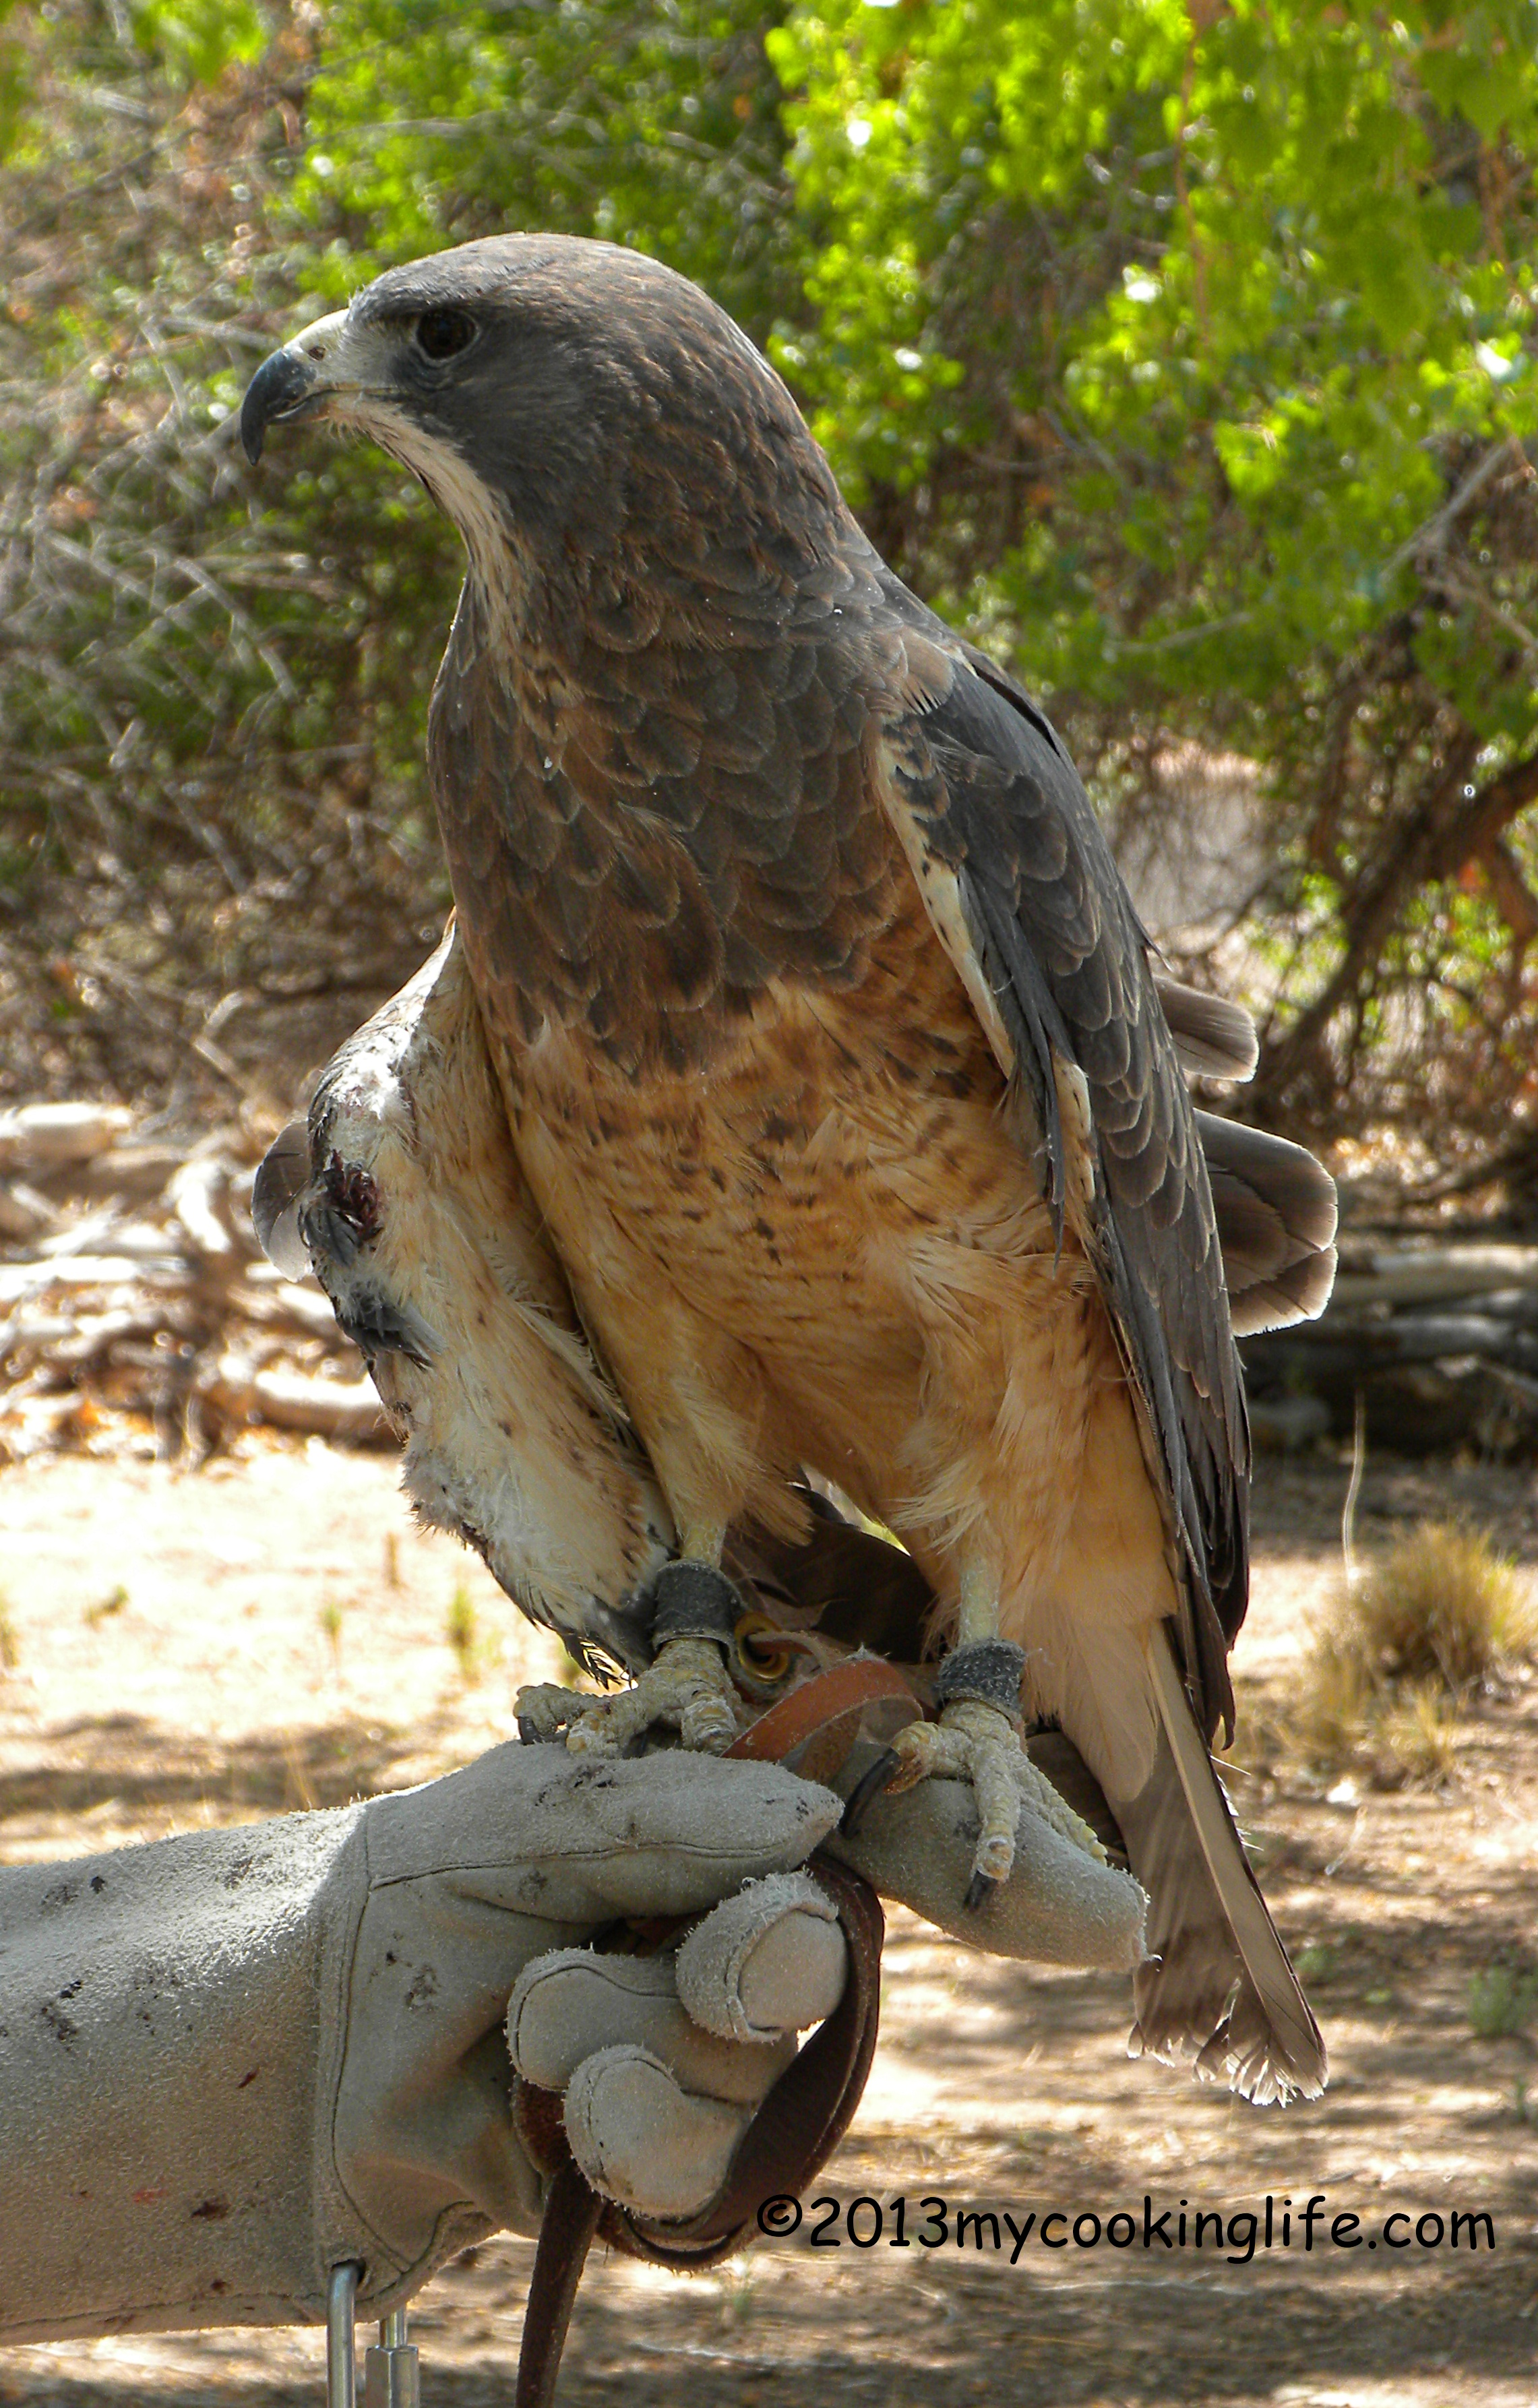 This is a Swainson's Hawk. He is wild but didn't seem to mind people and cameras. The volunteer told me they do not name the animals because they maintain the intention of their remaining completely wild.